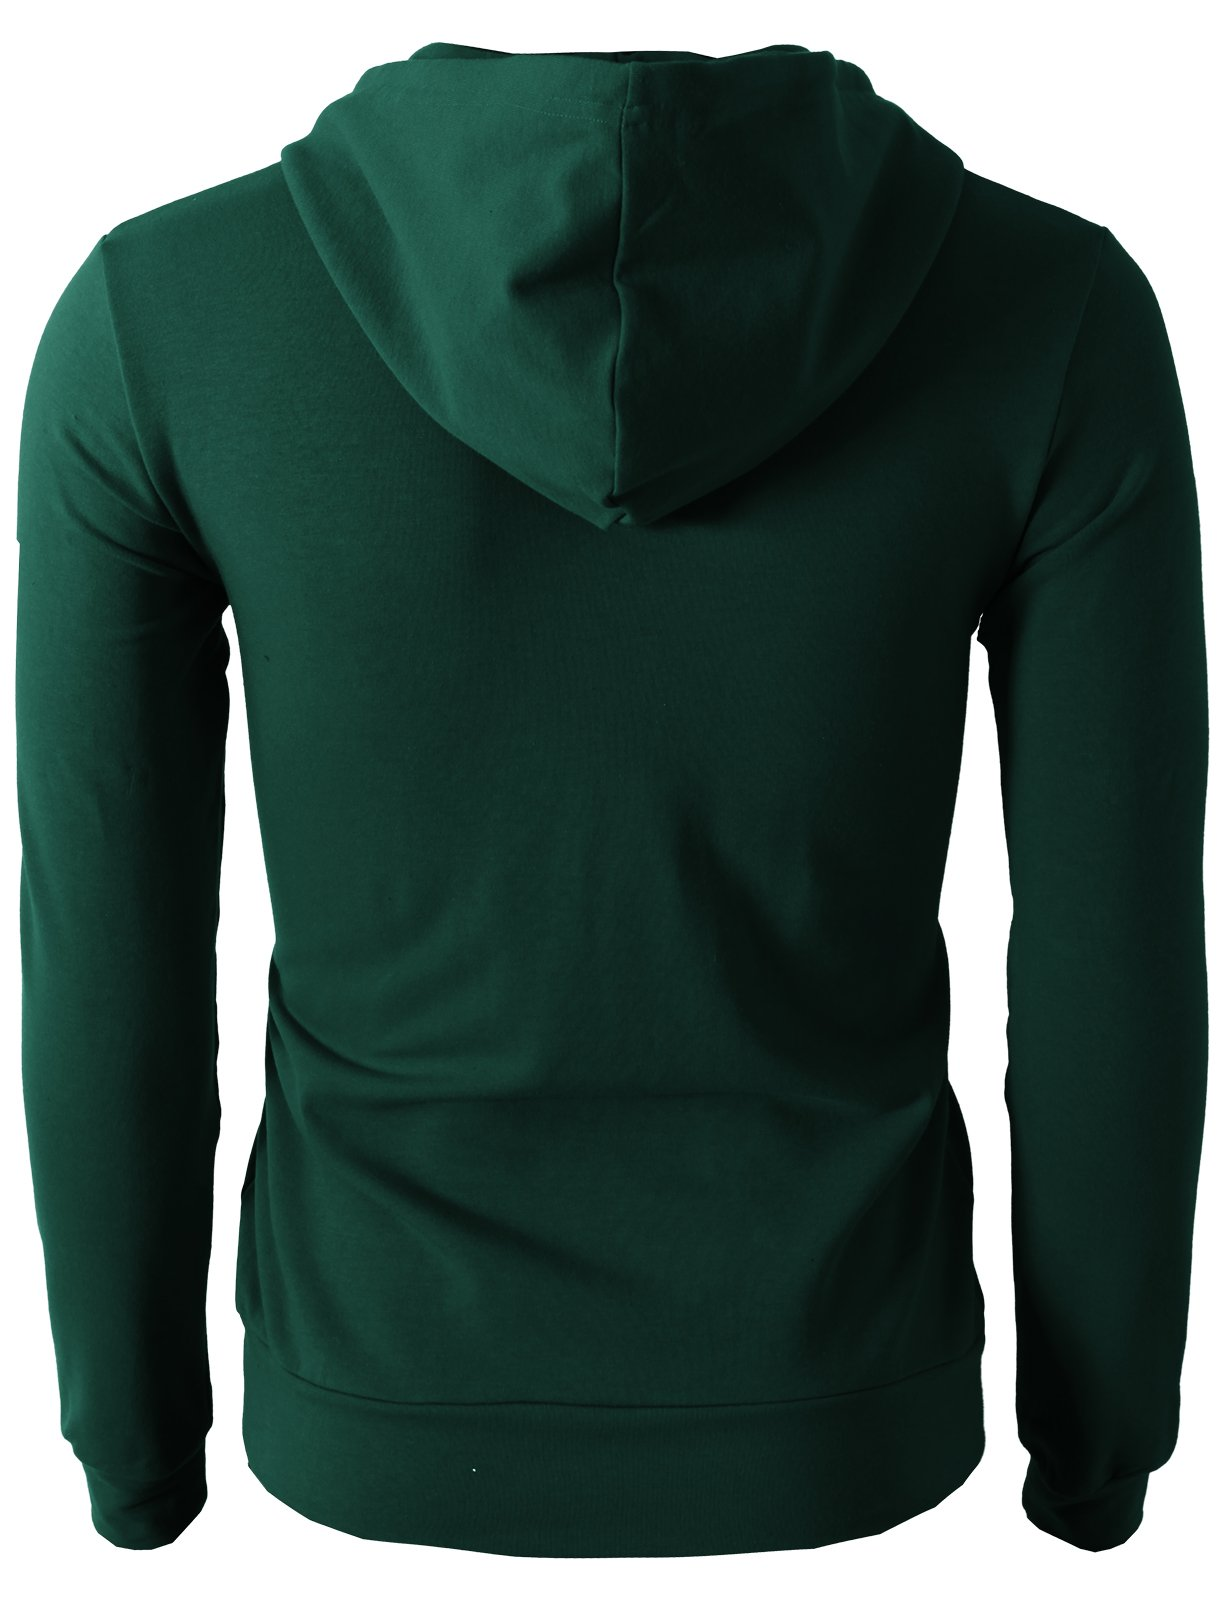 H2H Men's Casual Striped Drawstring Hooded And Zipper Closure Hoodies FORESTGREEN US XL/Asia XXXL (JNSK24) by H2H (Image #4)